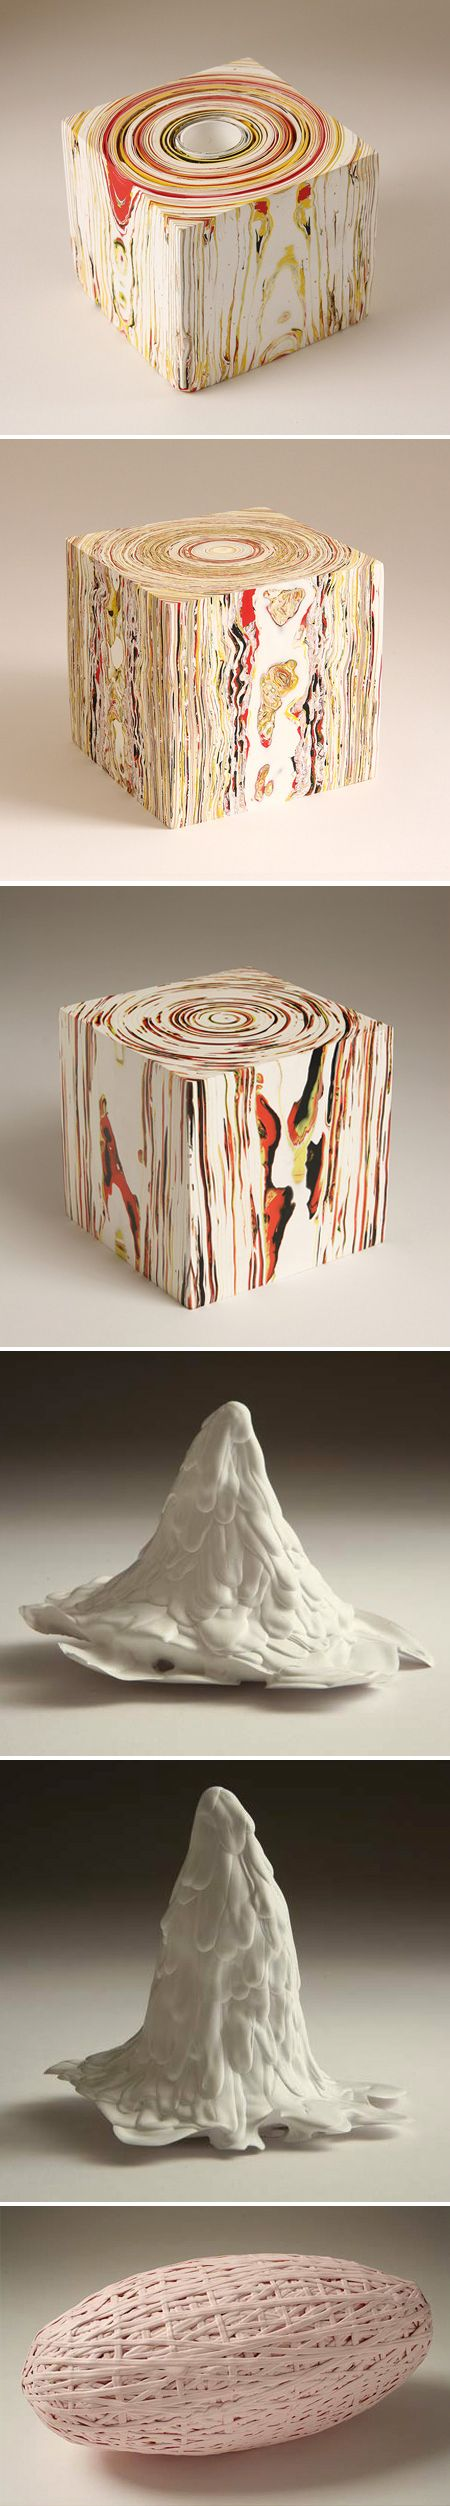 margie livingston - 3d paintings? sculpture made of paint? yes. layers and layers of acrylic paint!!!!